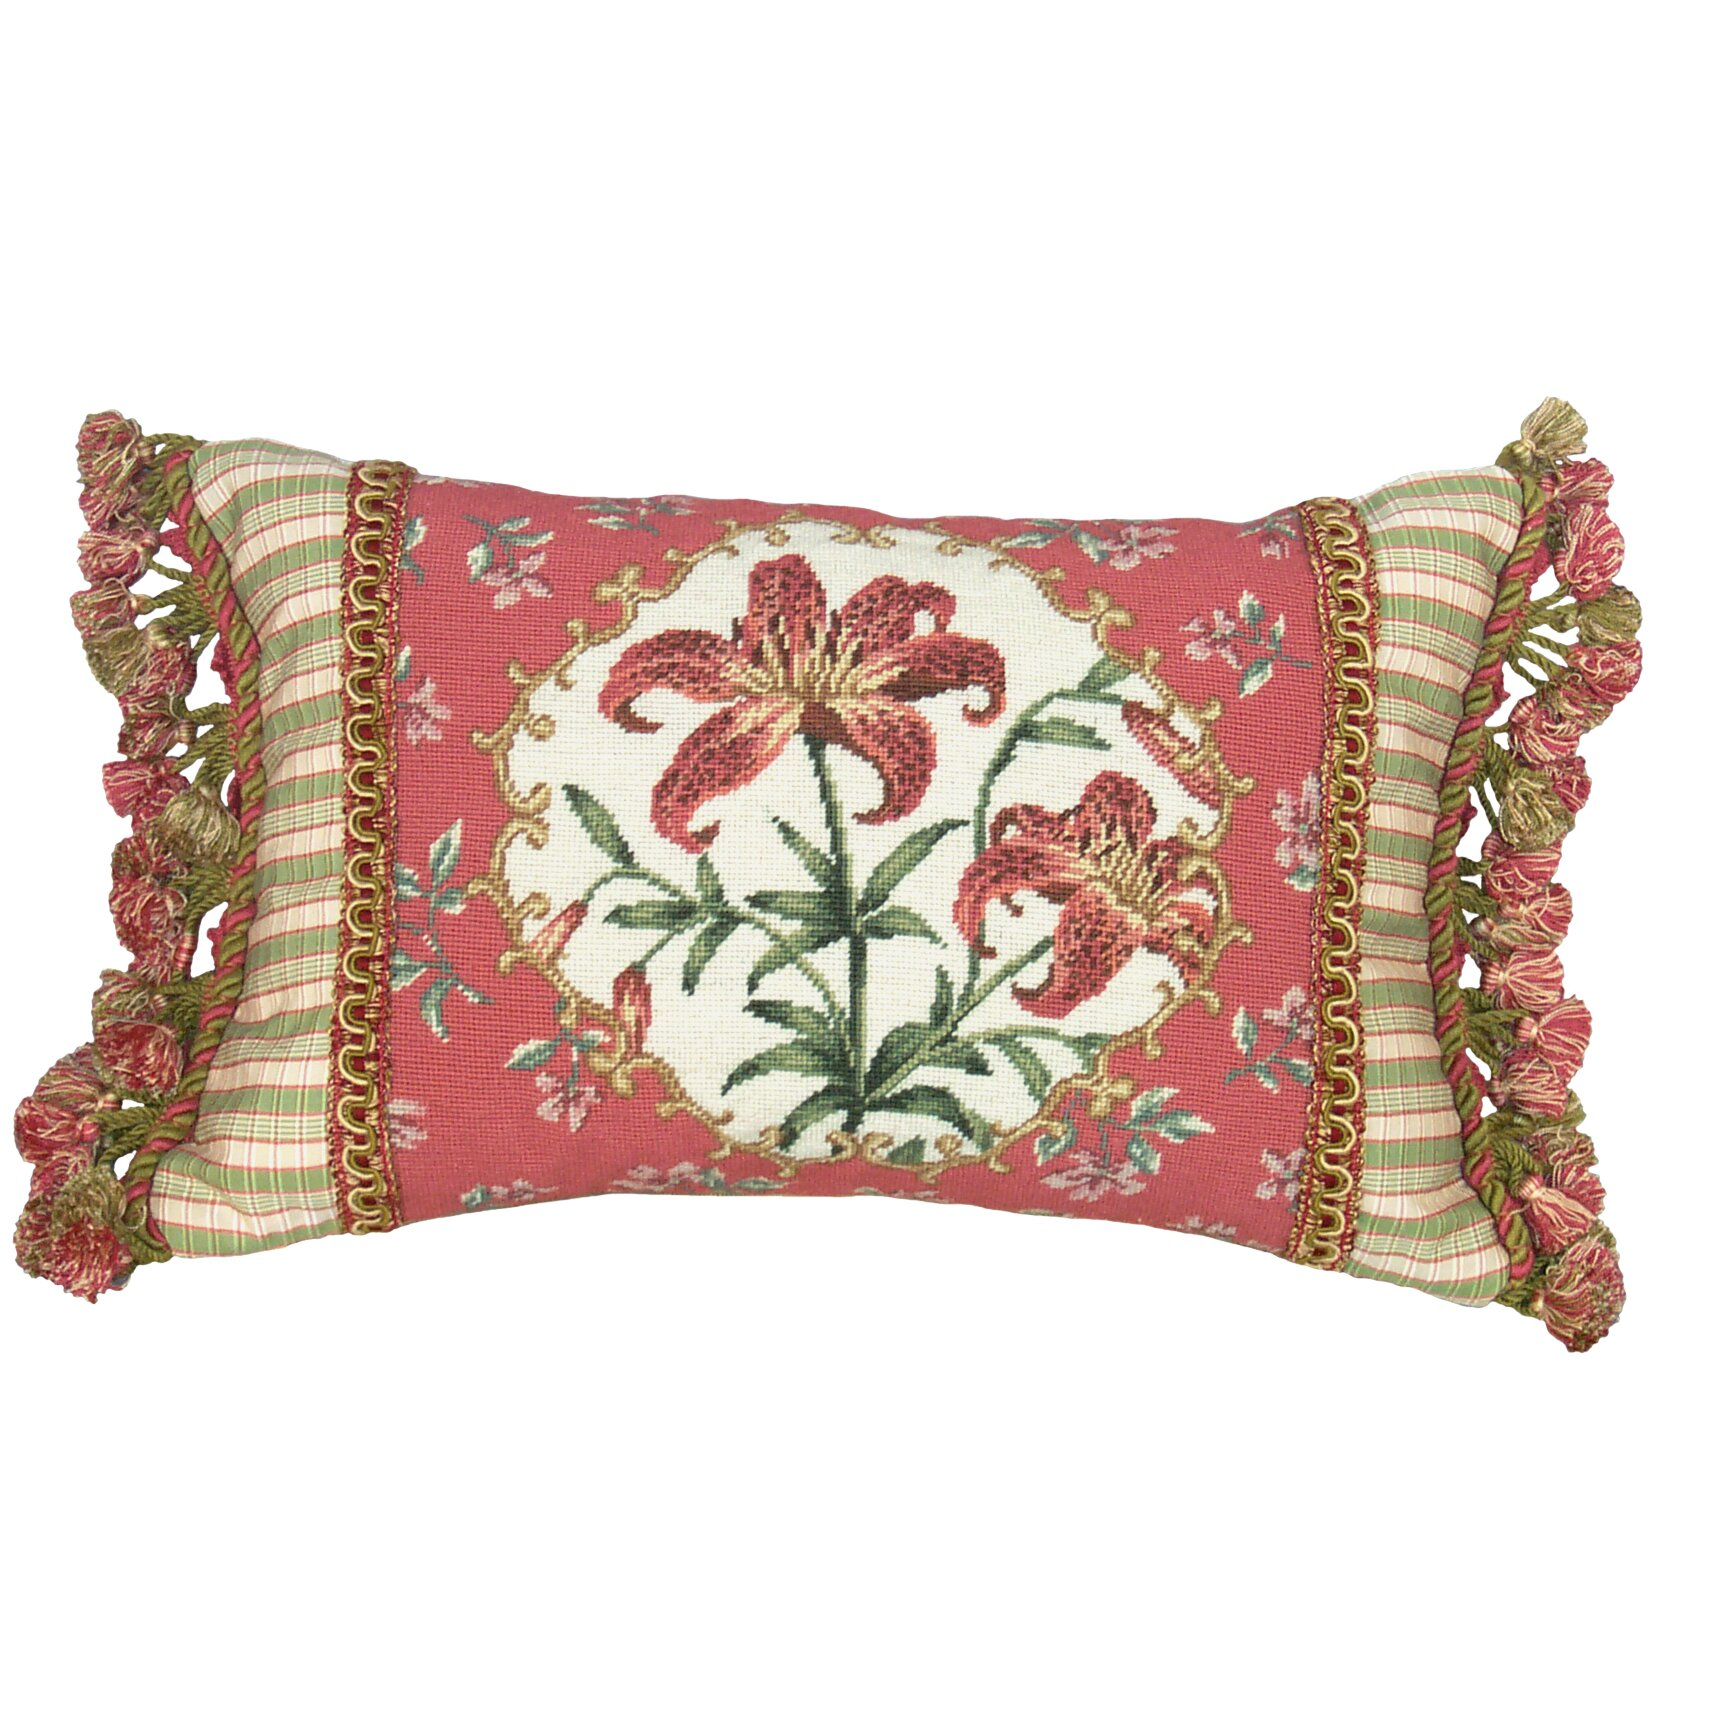 123 Creations Floral Tiger Lily Petit Point Wool Lumbar